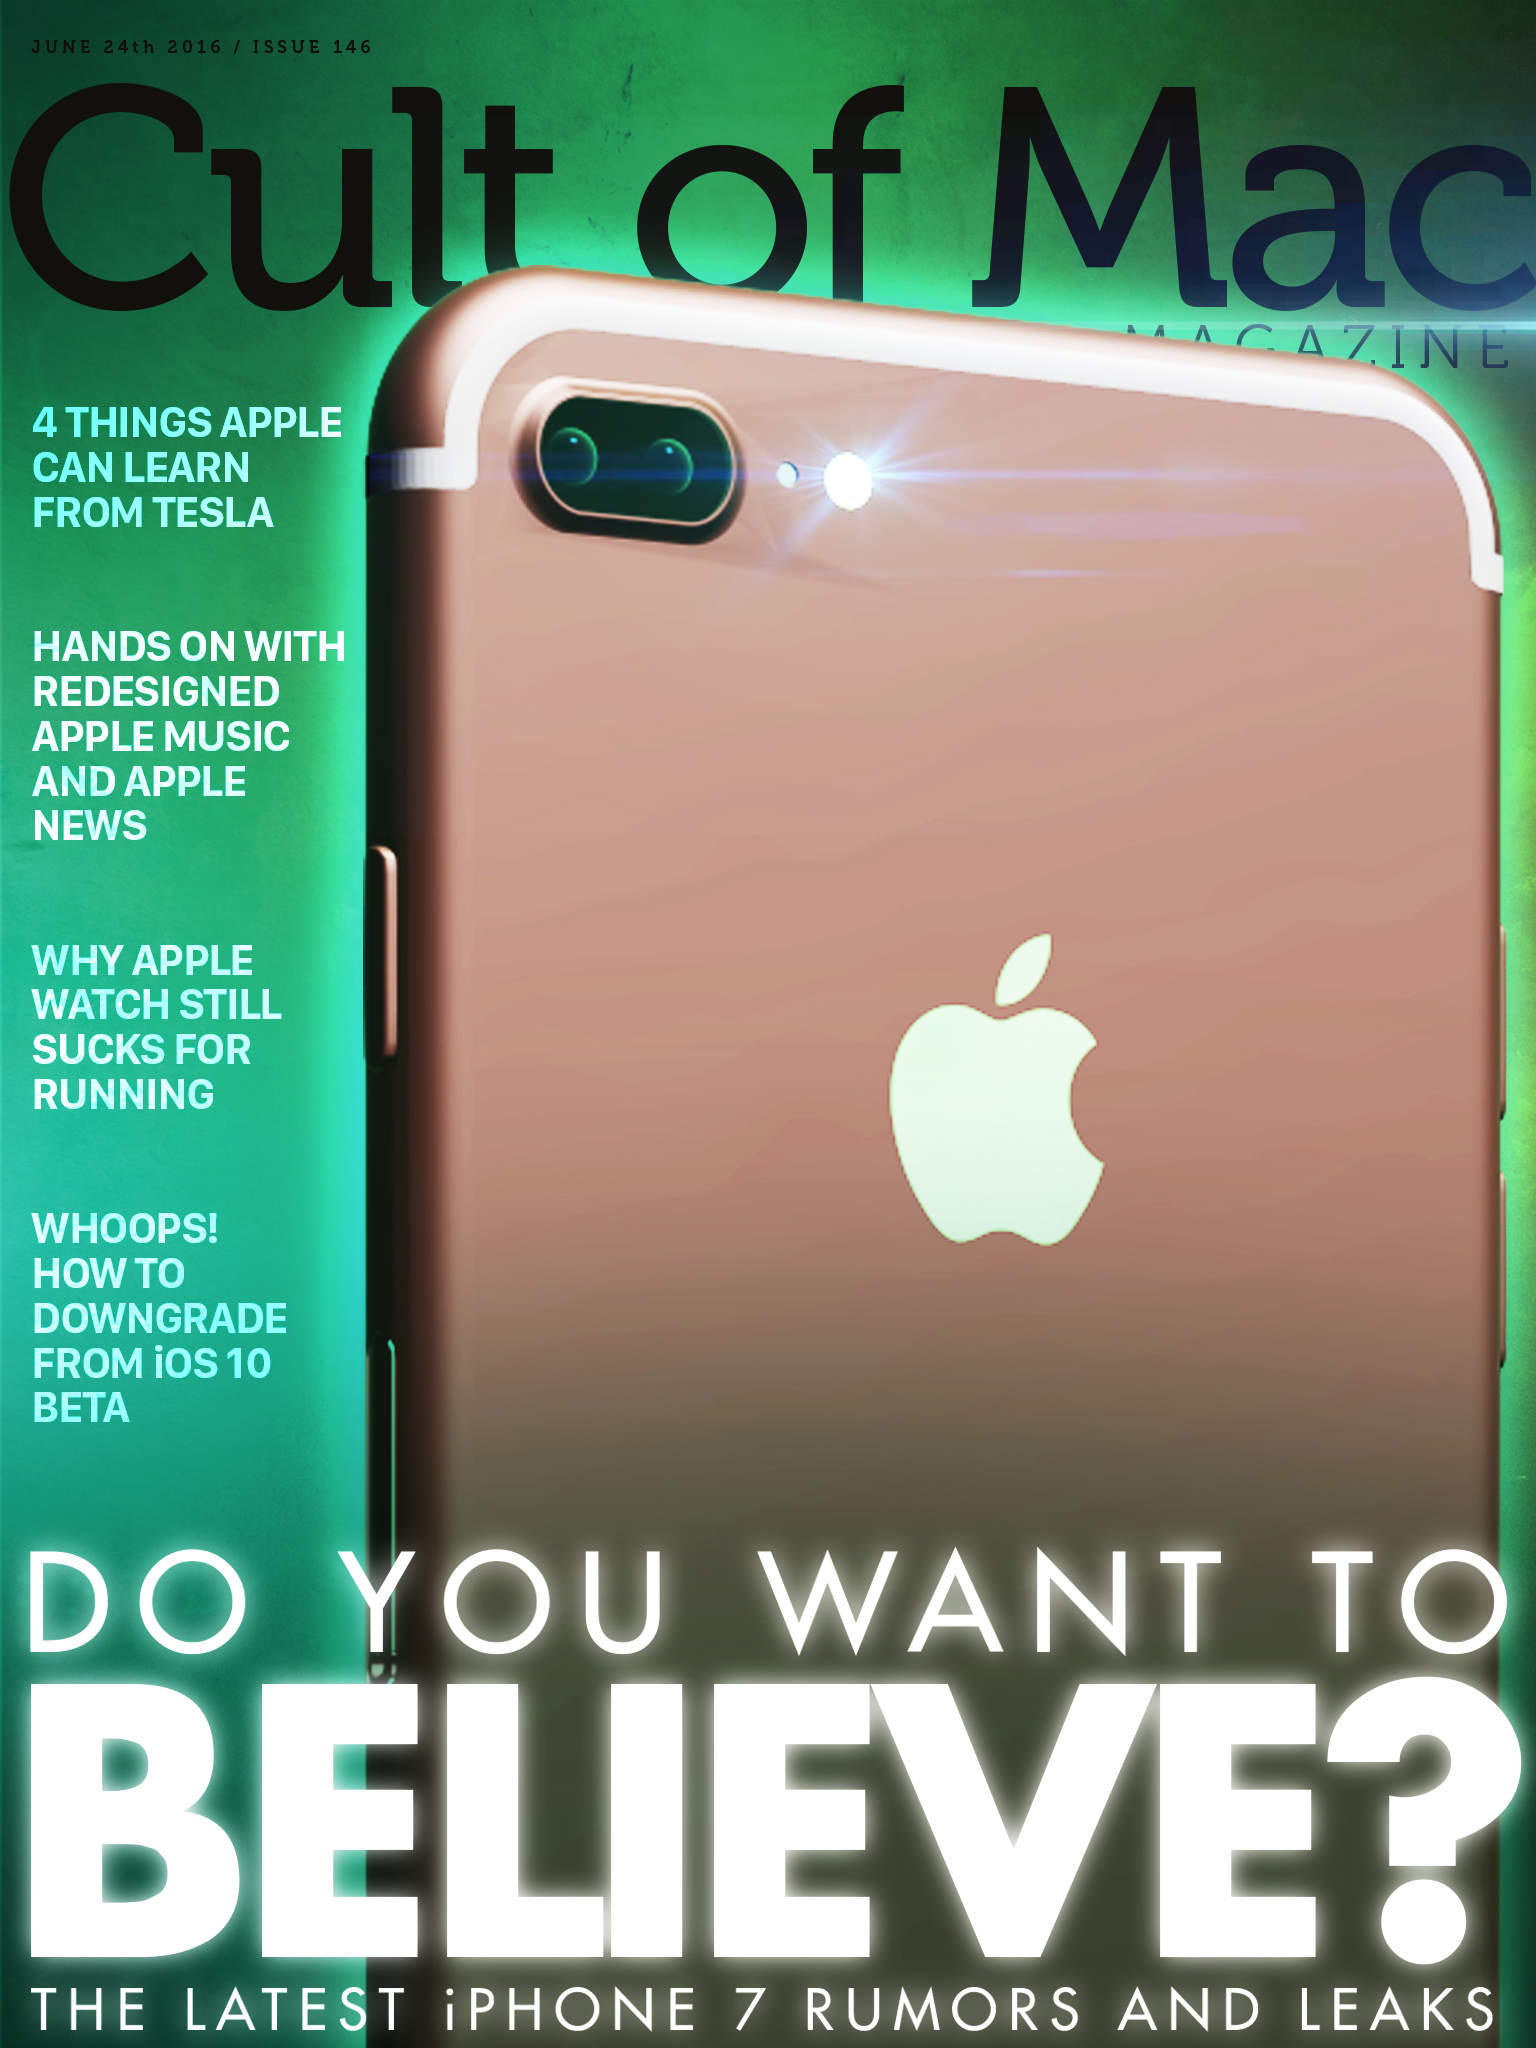 iphone 7 rumors iphone 7 rumors on with apple and apple news 11554